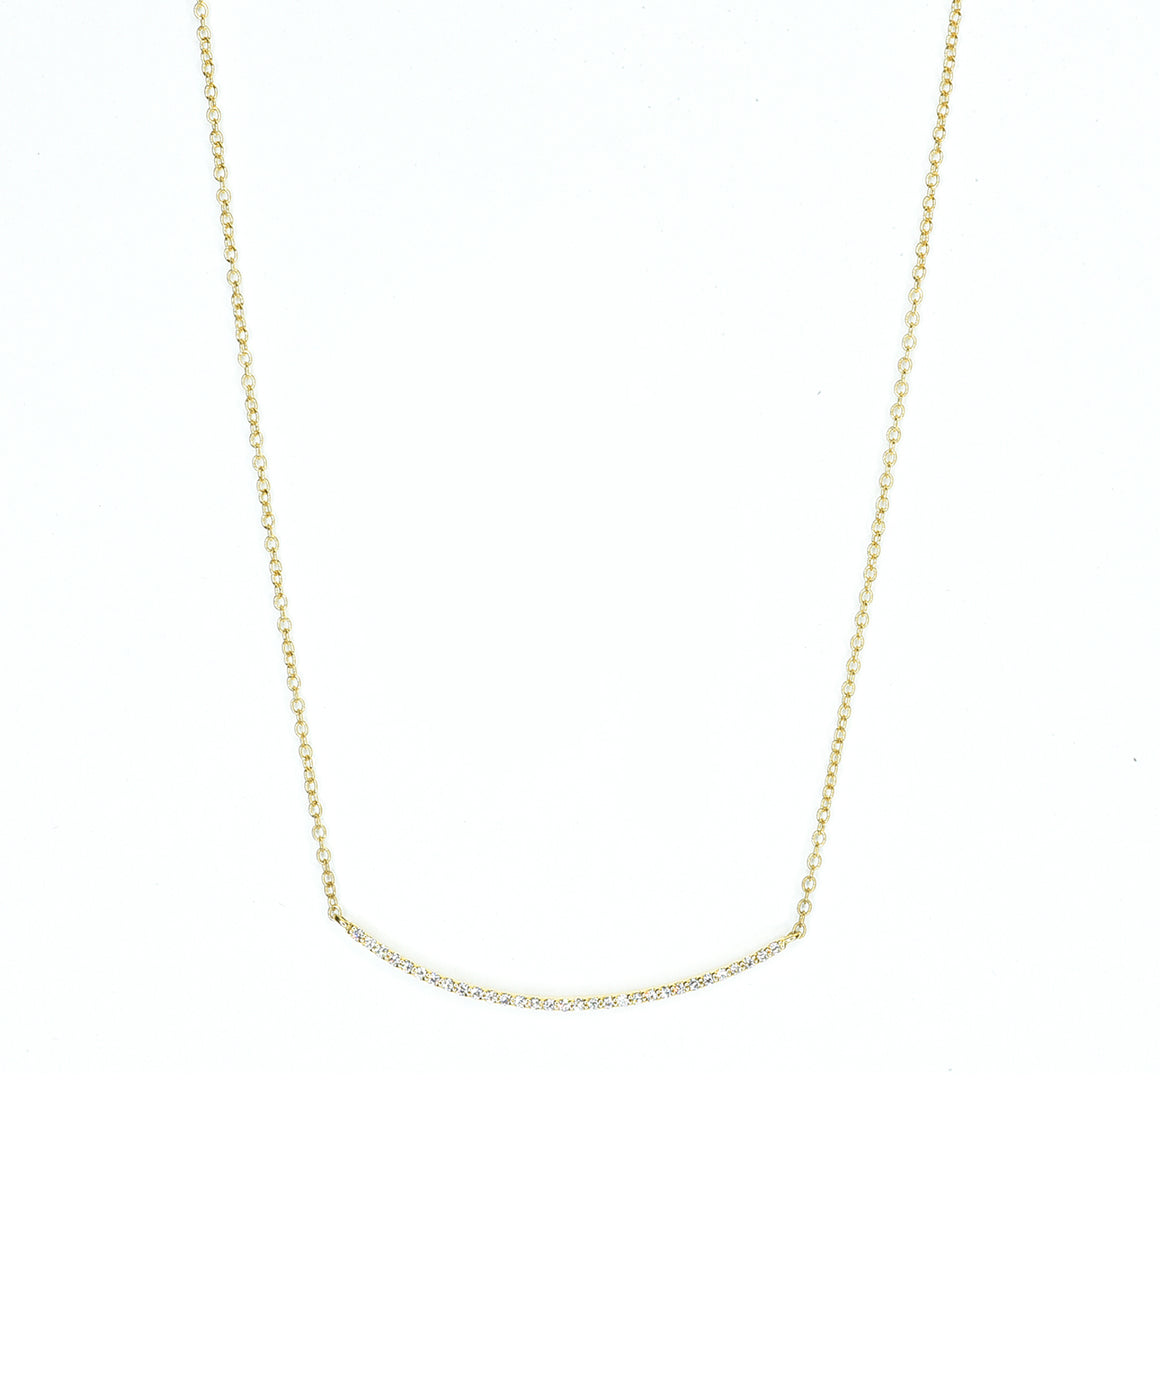 Bar necklace in yellow gold